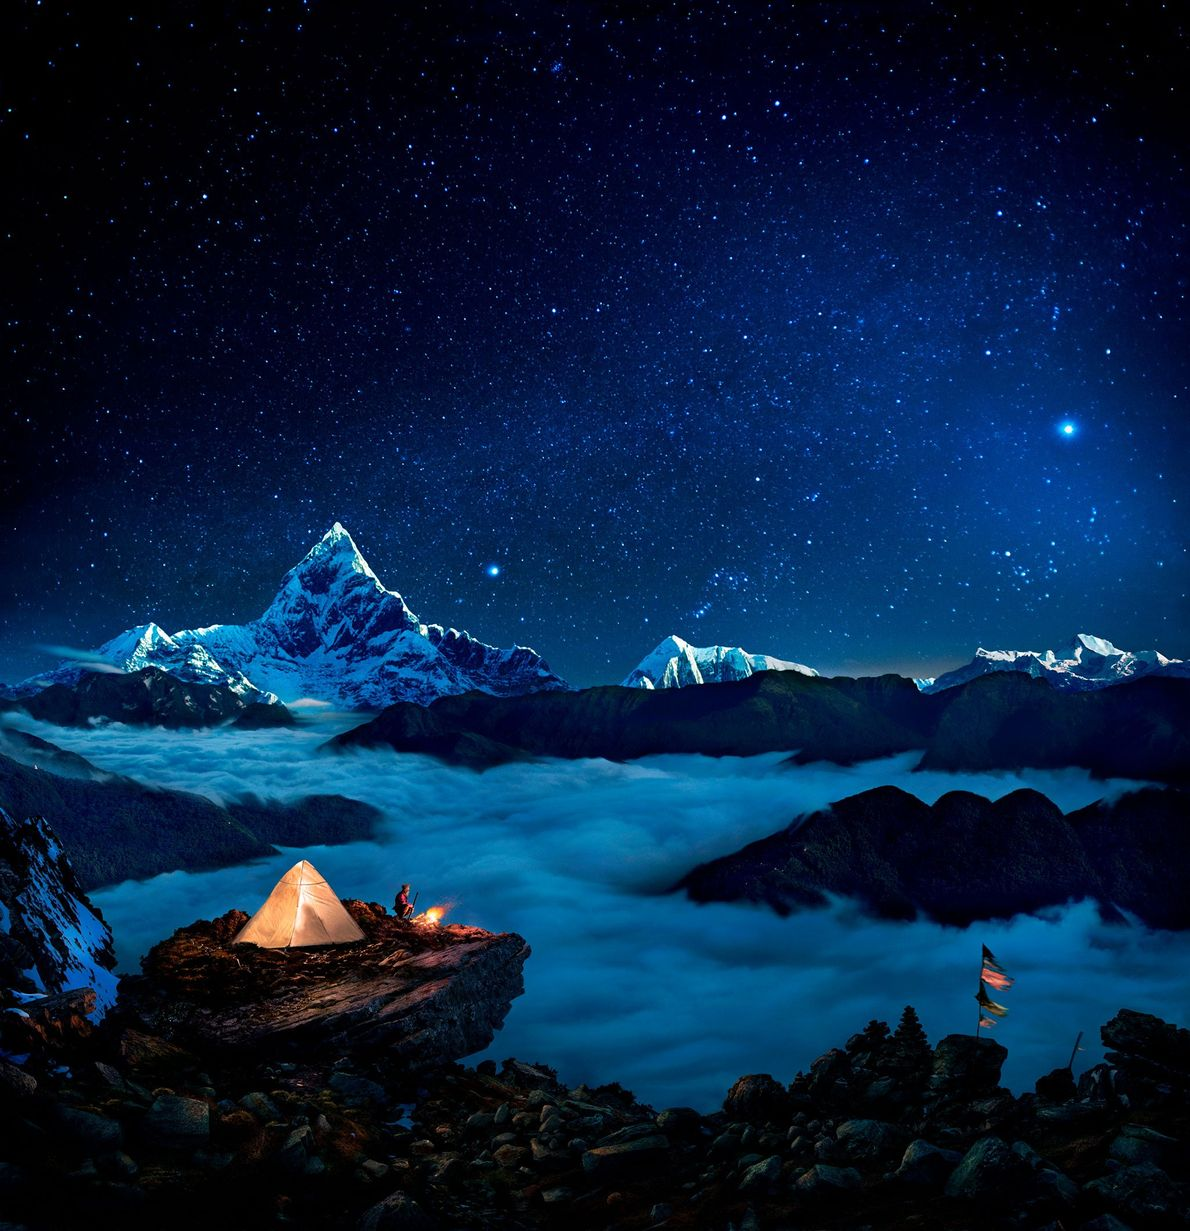 Stars shine down on campers at a bonfire in Kaski, Nepal.